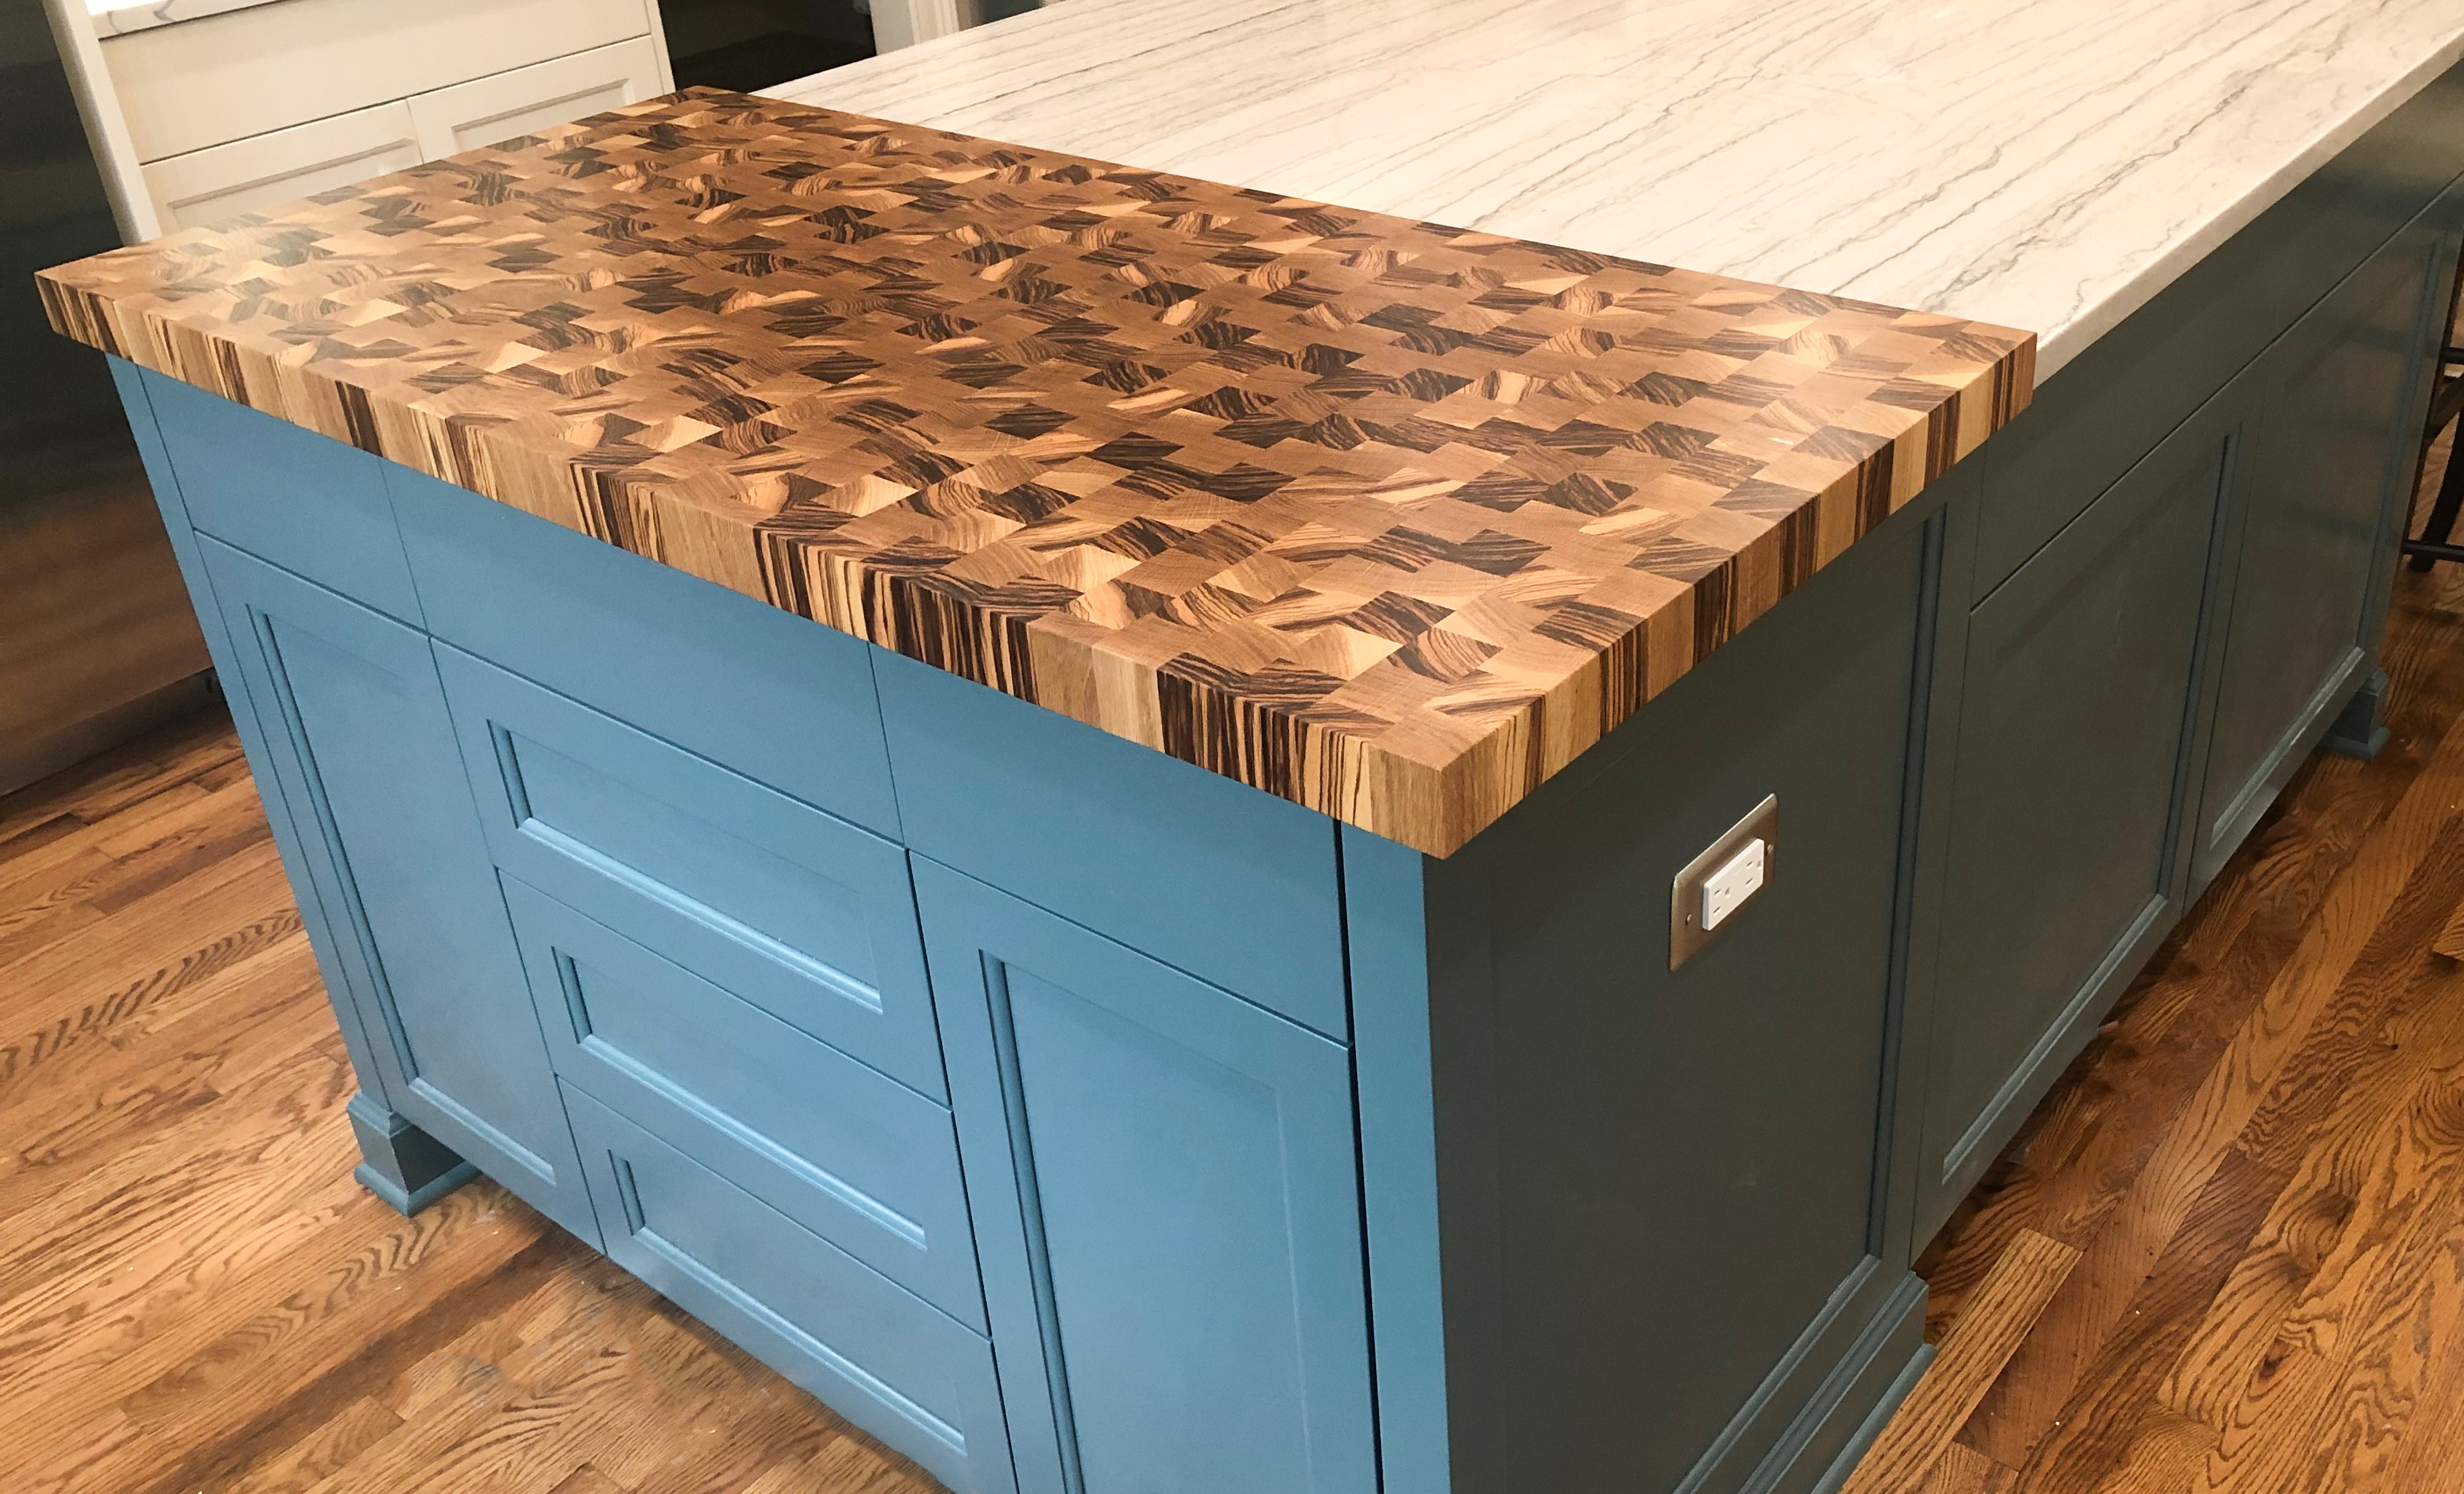 Edge Grain Zebra & White Oak Island Addition